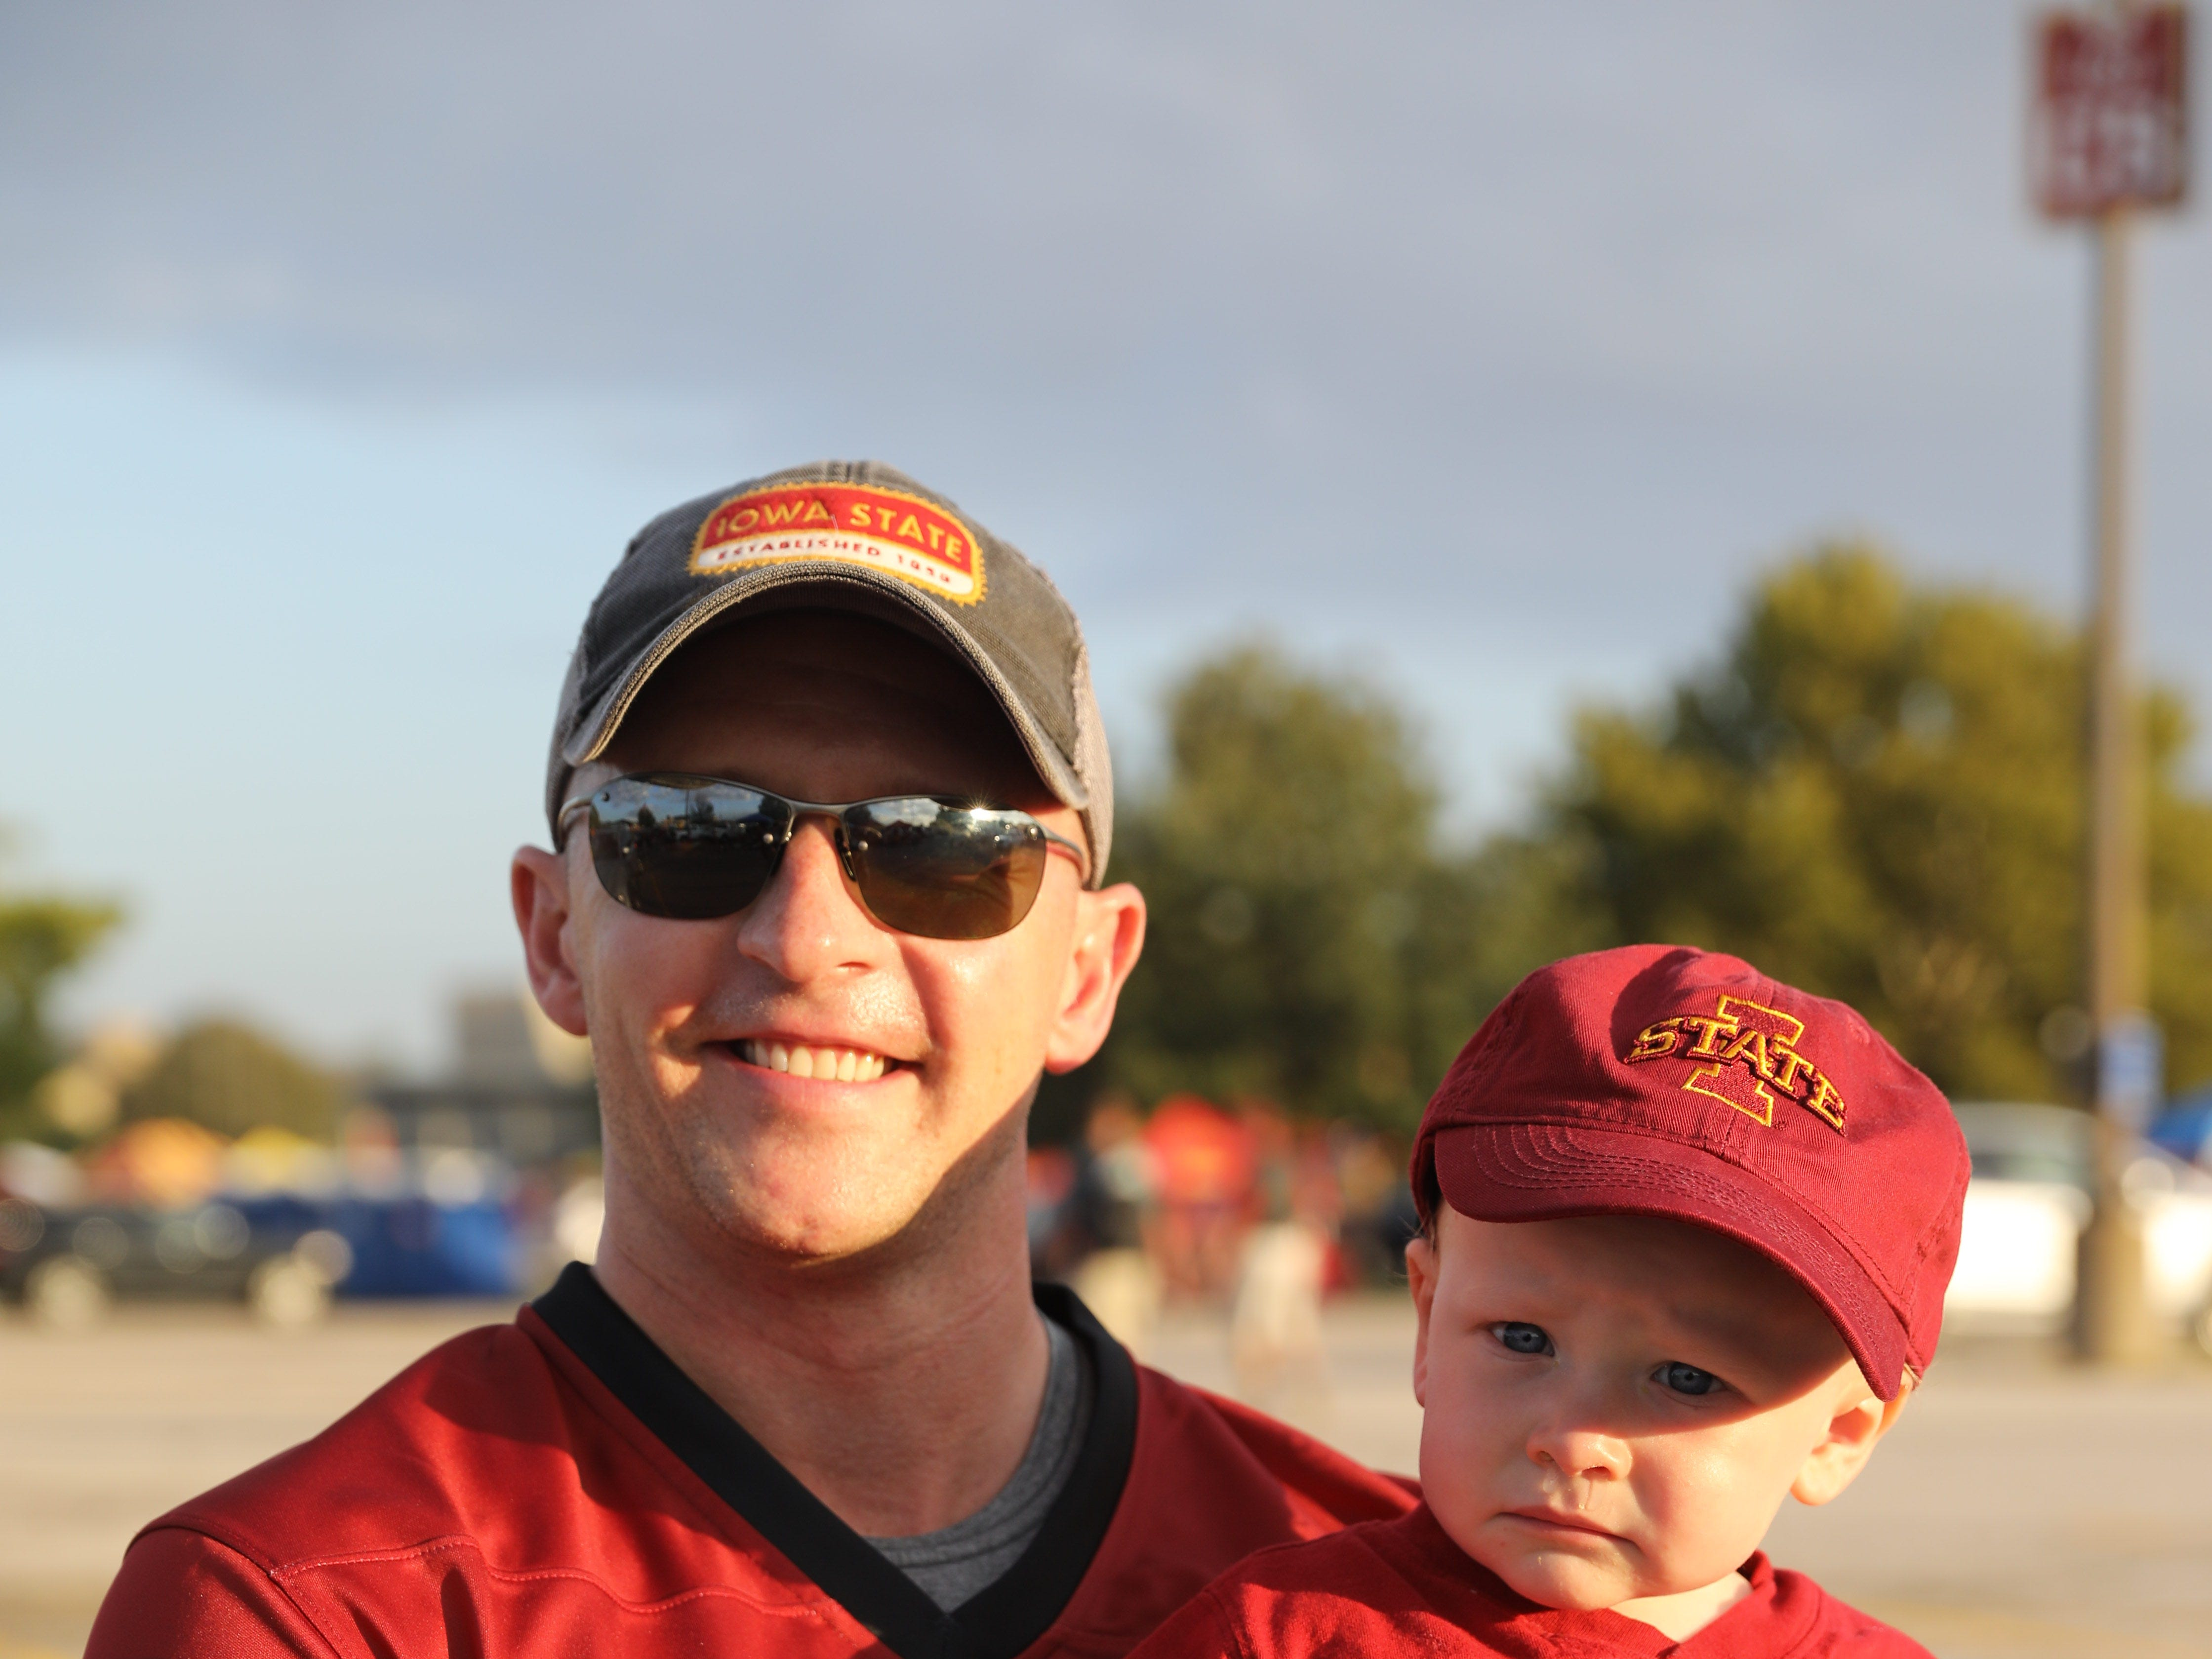 Matt Nuetzman and Jack Nuetzman, 1, both of Urbandale, Saturday, Sept. 15, 2018, before the Iowa State football game against Oklahoma in Ames.